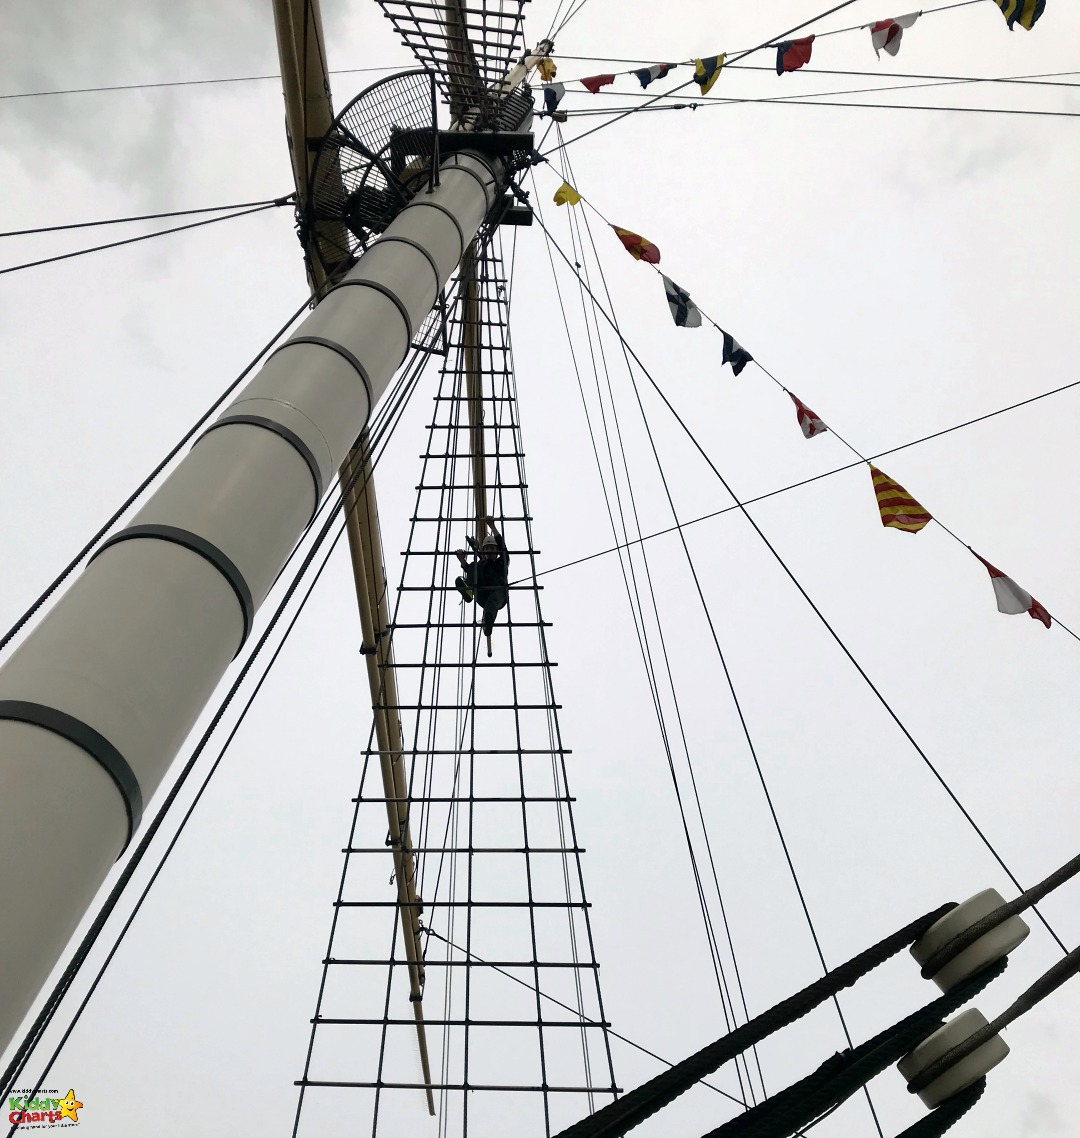 SS Great Britain - coming down the rigging #travel #uk #bristol #daysout